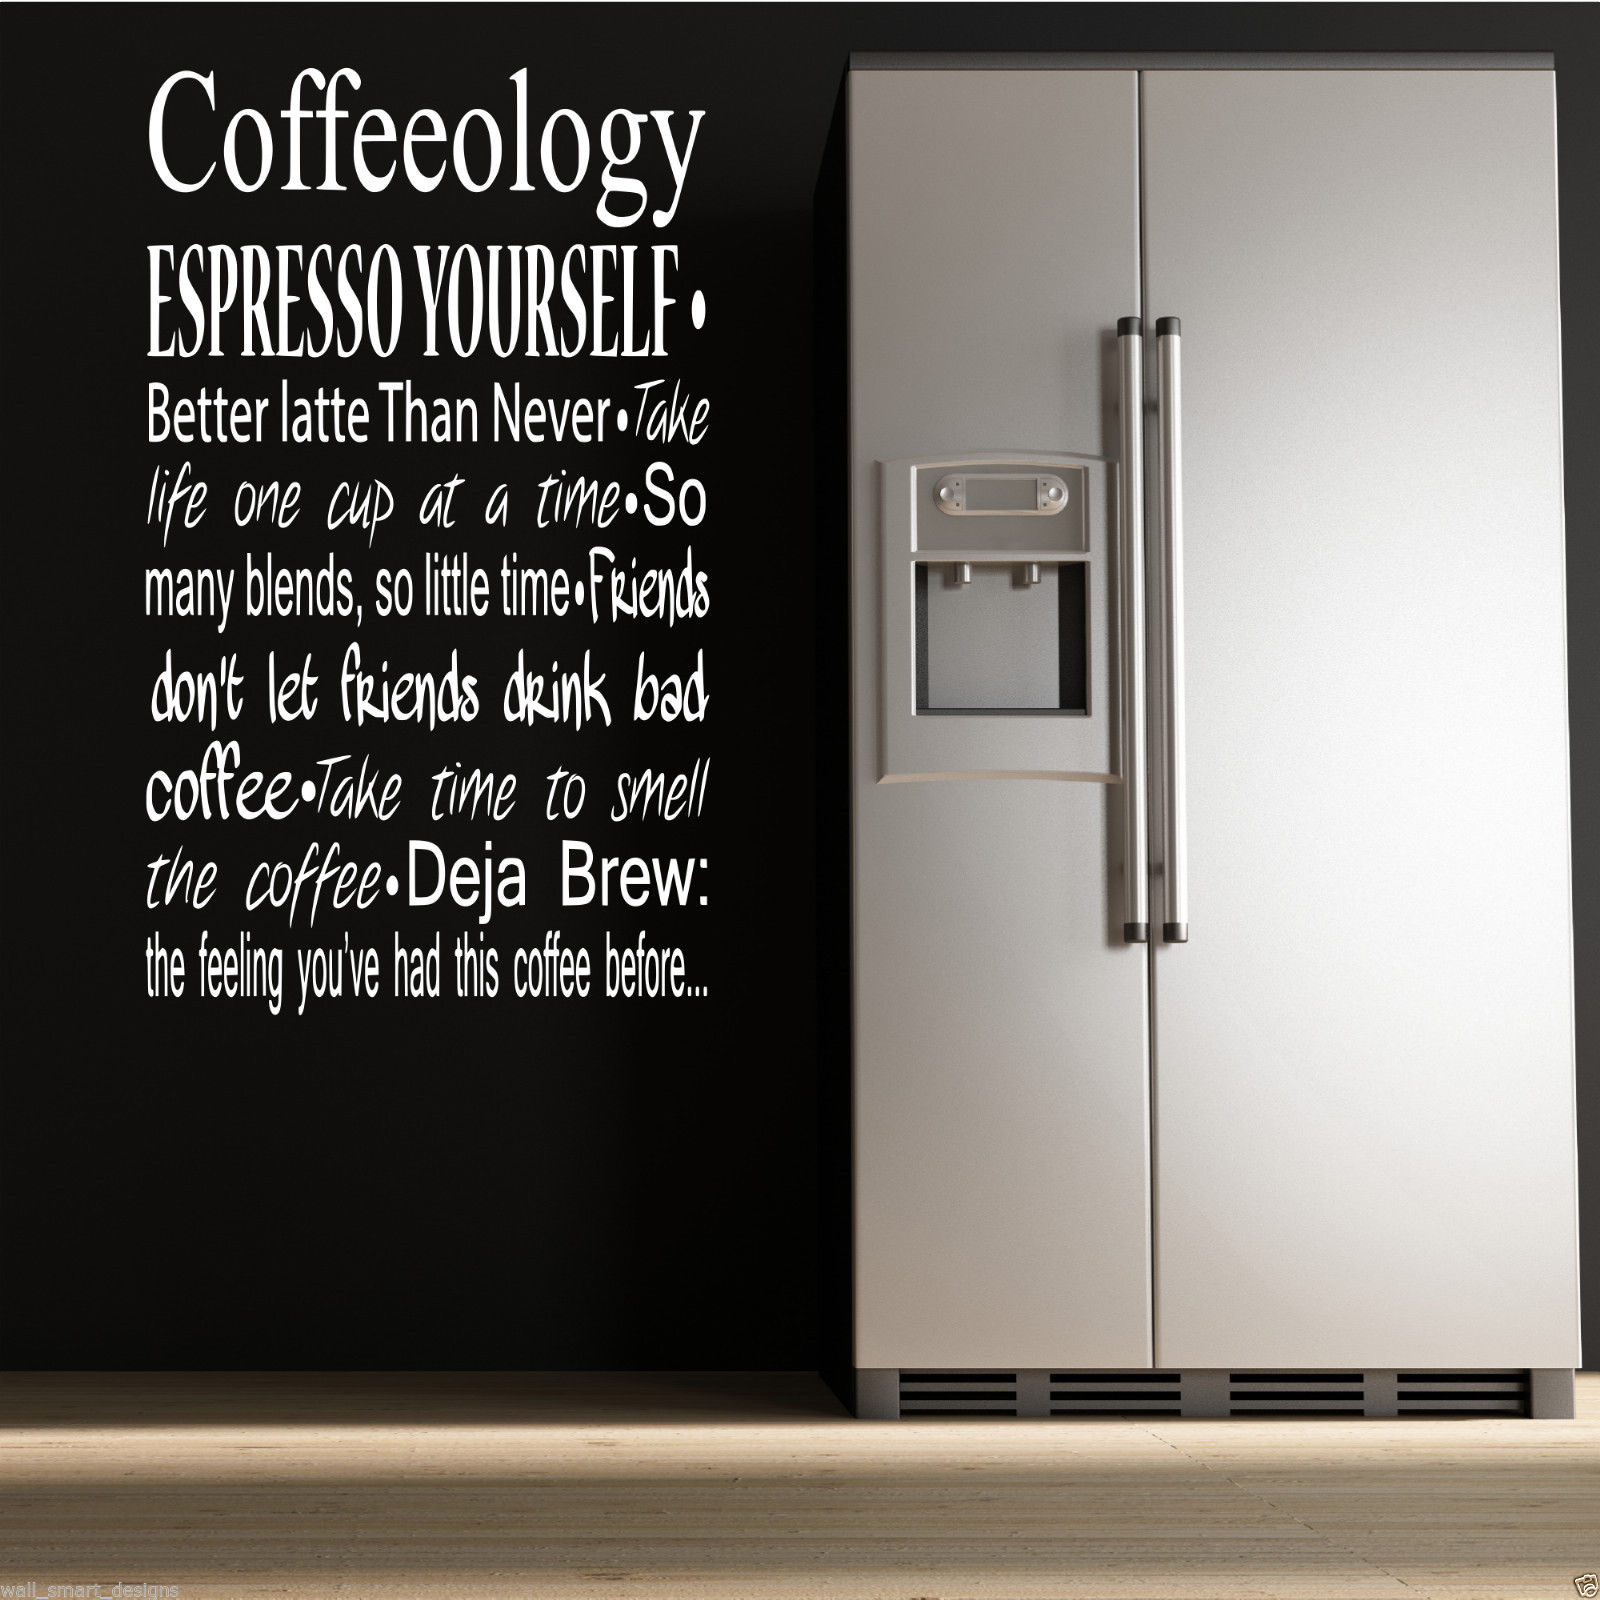 Wall art kitchen quotes - Coffee Coffeeology Kitchen Wall Art Sticker Quote Decal